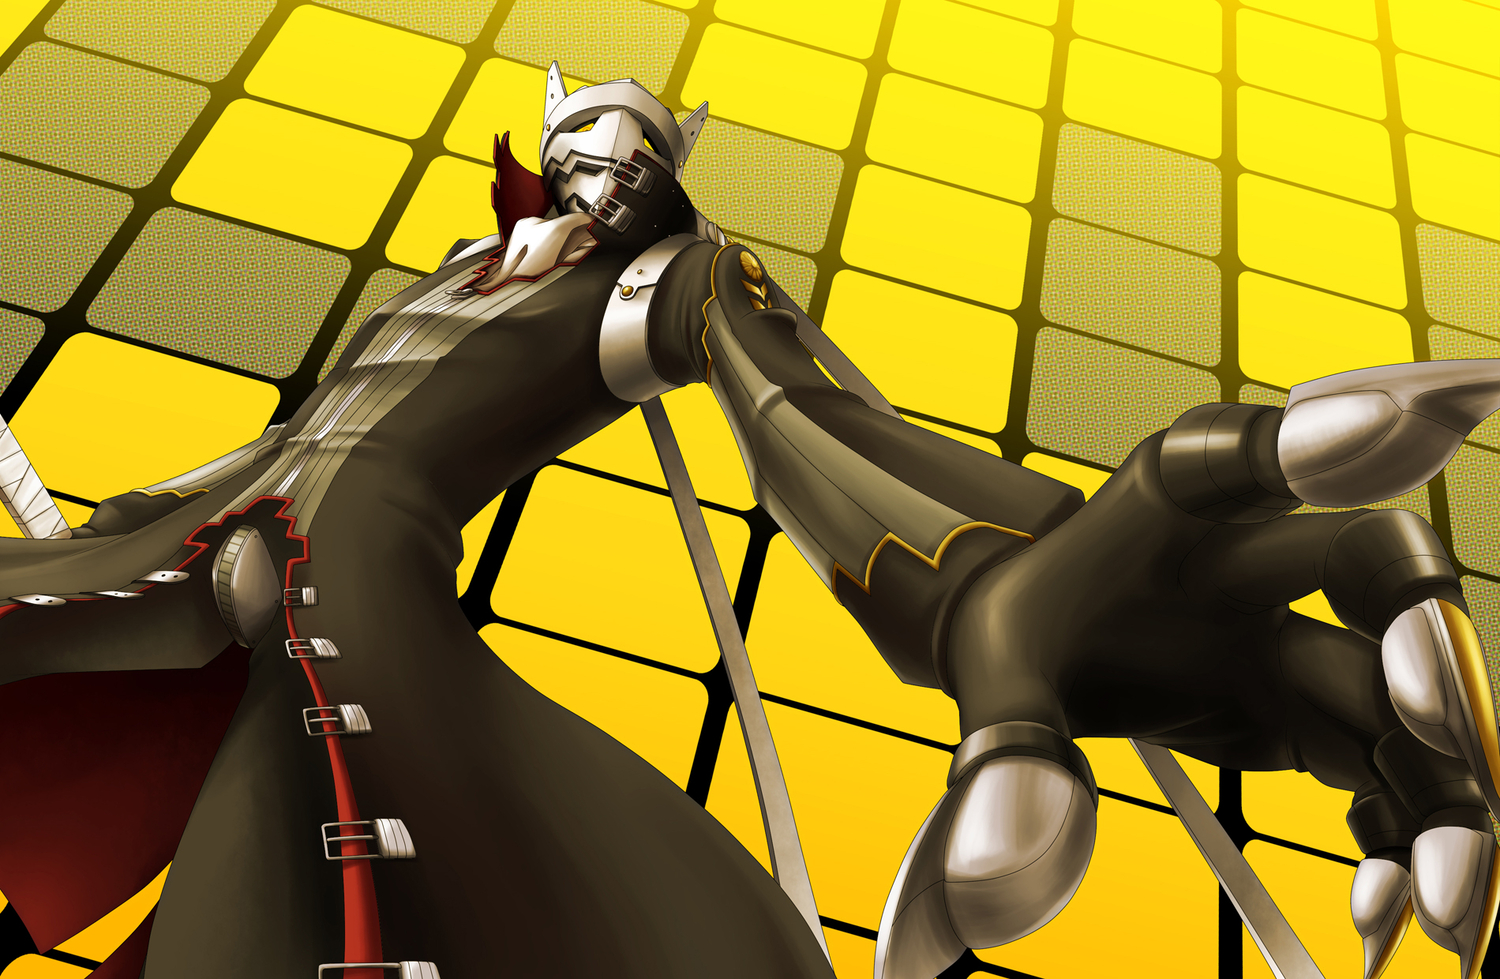 Persona 4 Wallpaper and Background Image | 1500x979 | ID ...